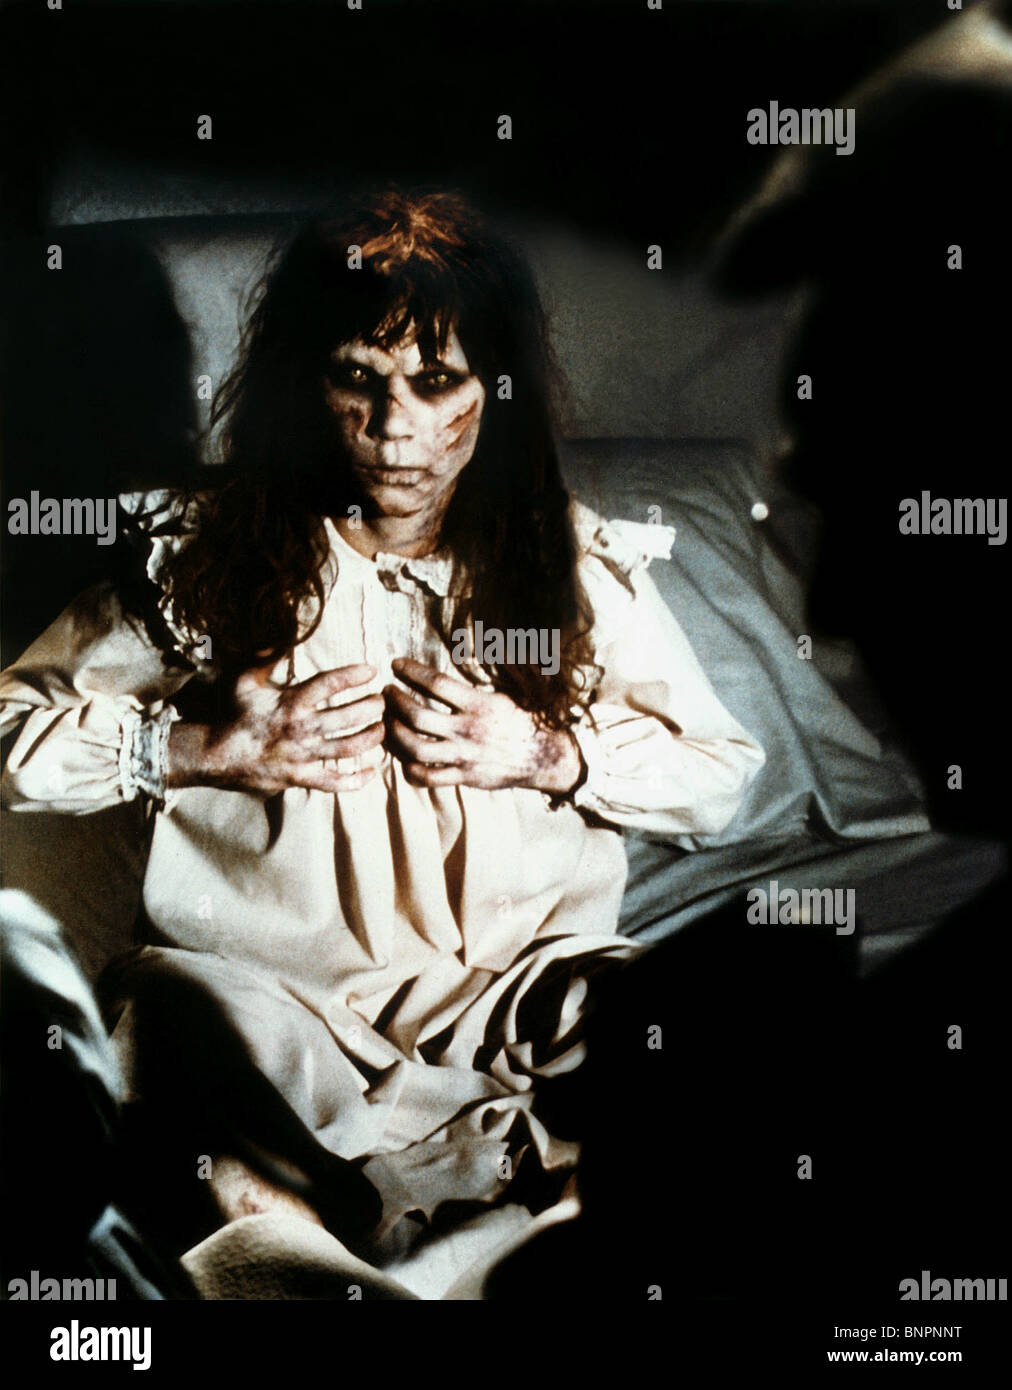 linda blair the exorcist 1973 stock photo 30618164 alamy